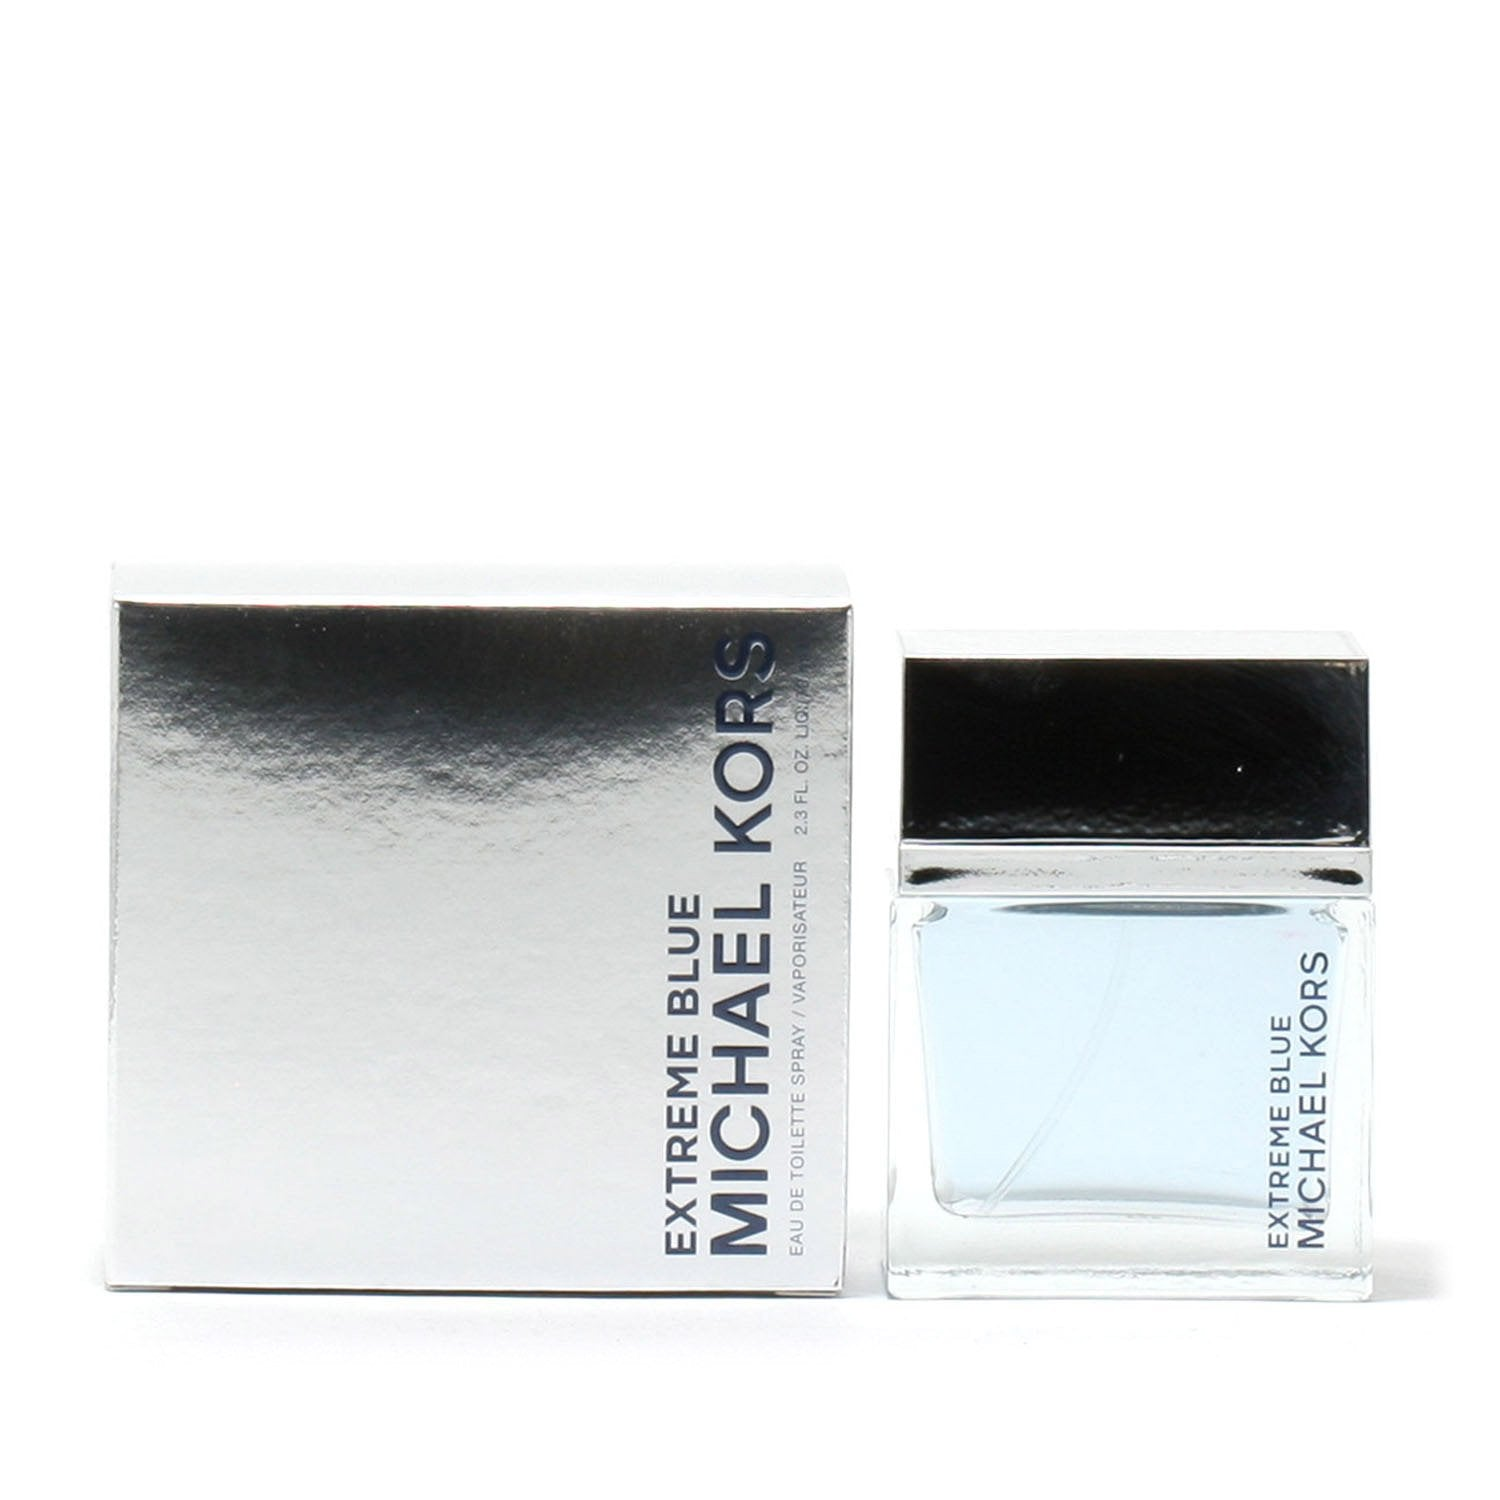 Cologne - MICHAEL KORS EXTREME BLUE FOR MEN - EAU DE TOILETTE SPRAY